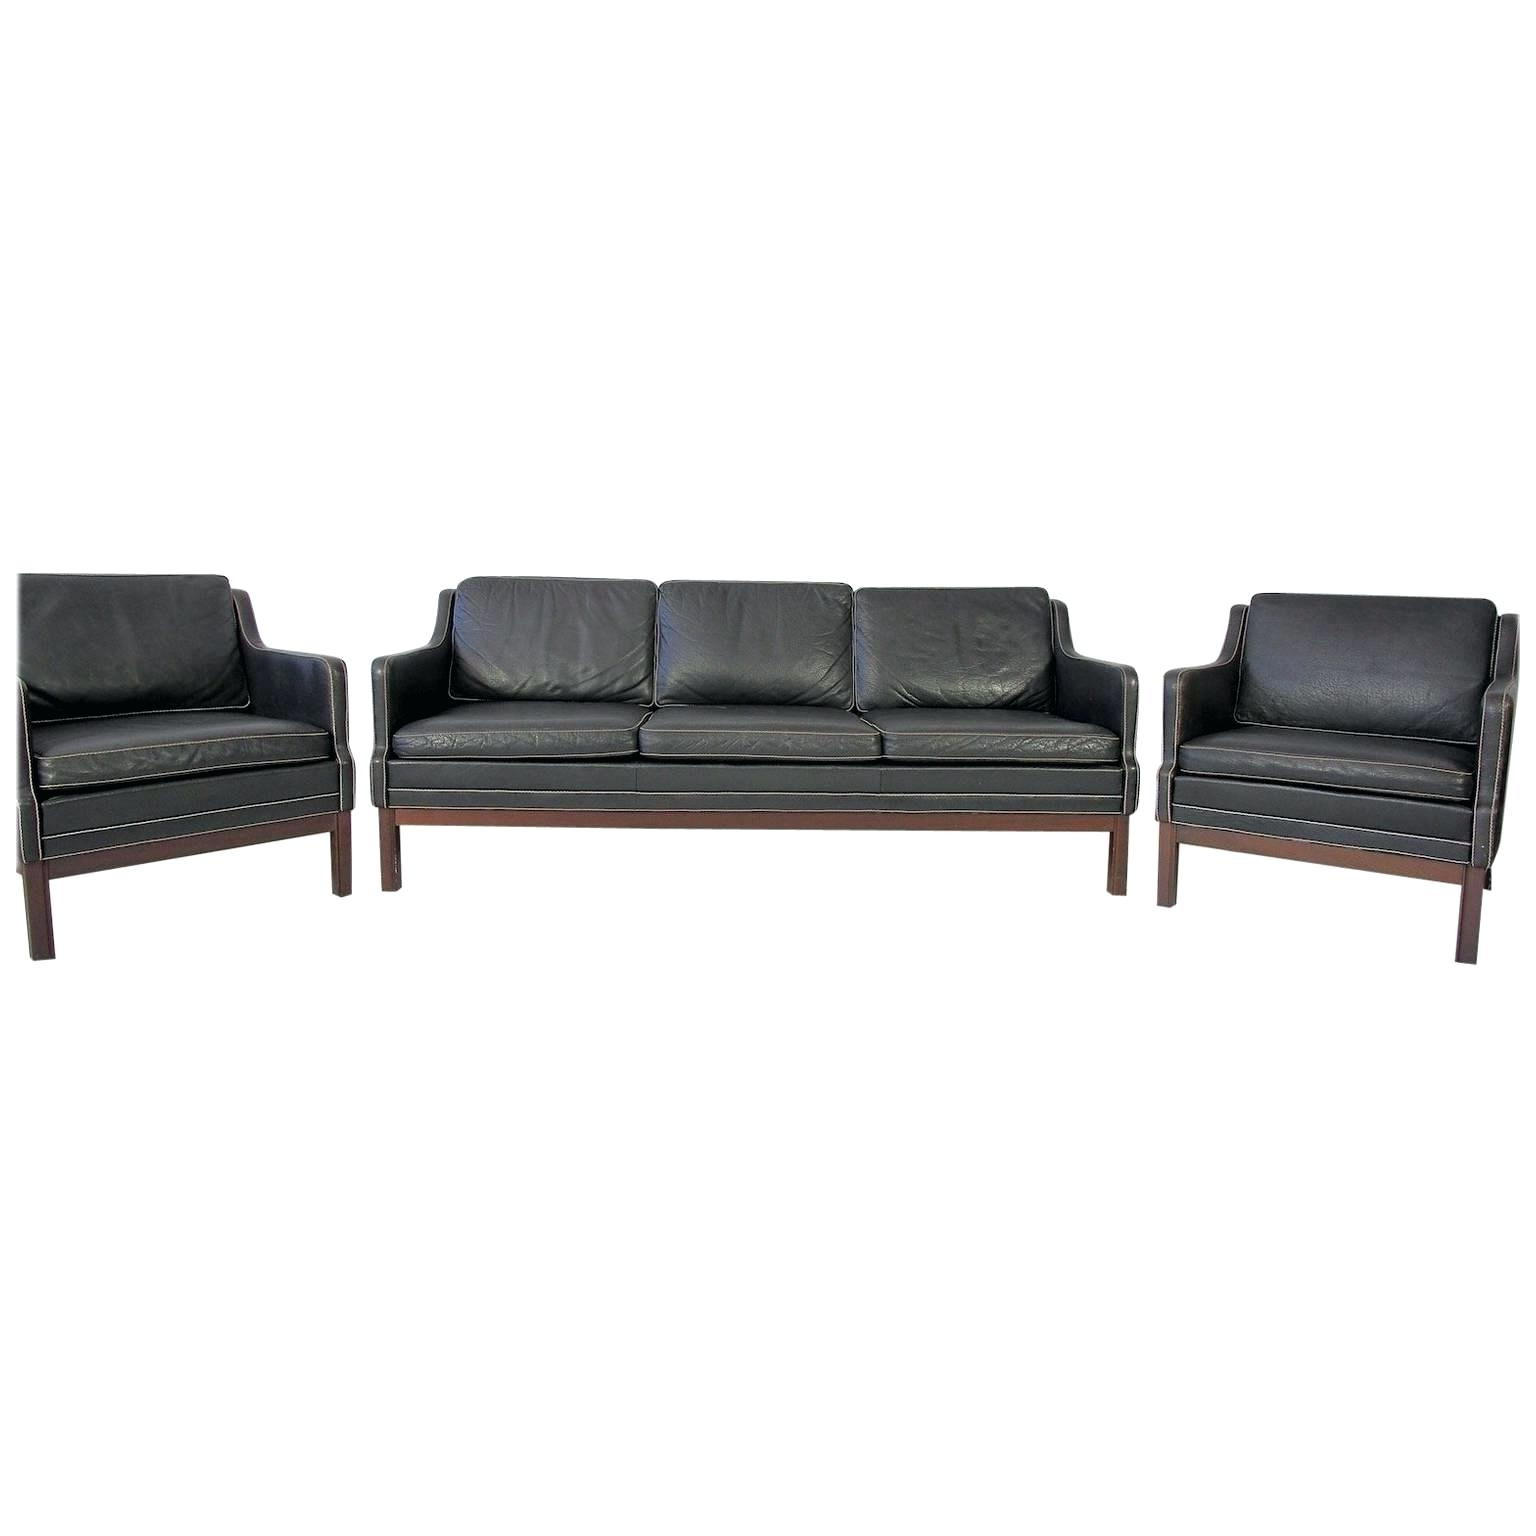 Best And Newest Sectional Sofas At Buffalo Ny In Buffalo Leather Couch Cha Buffalo Leather Sectional – Thedropin (View 4 of 20)